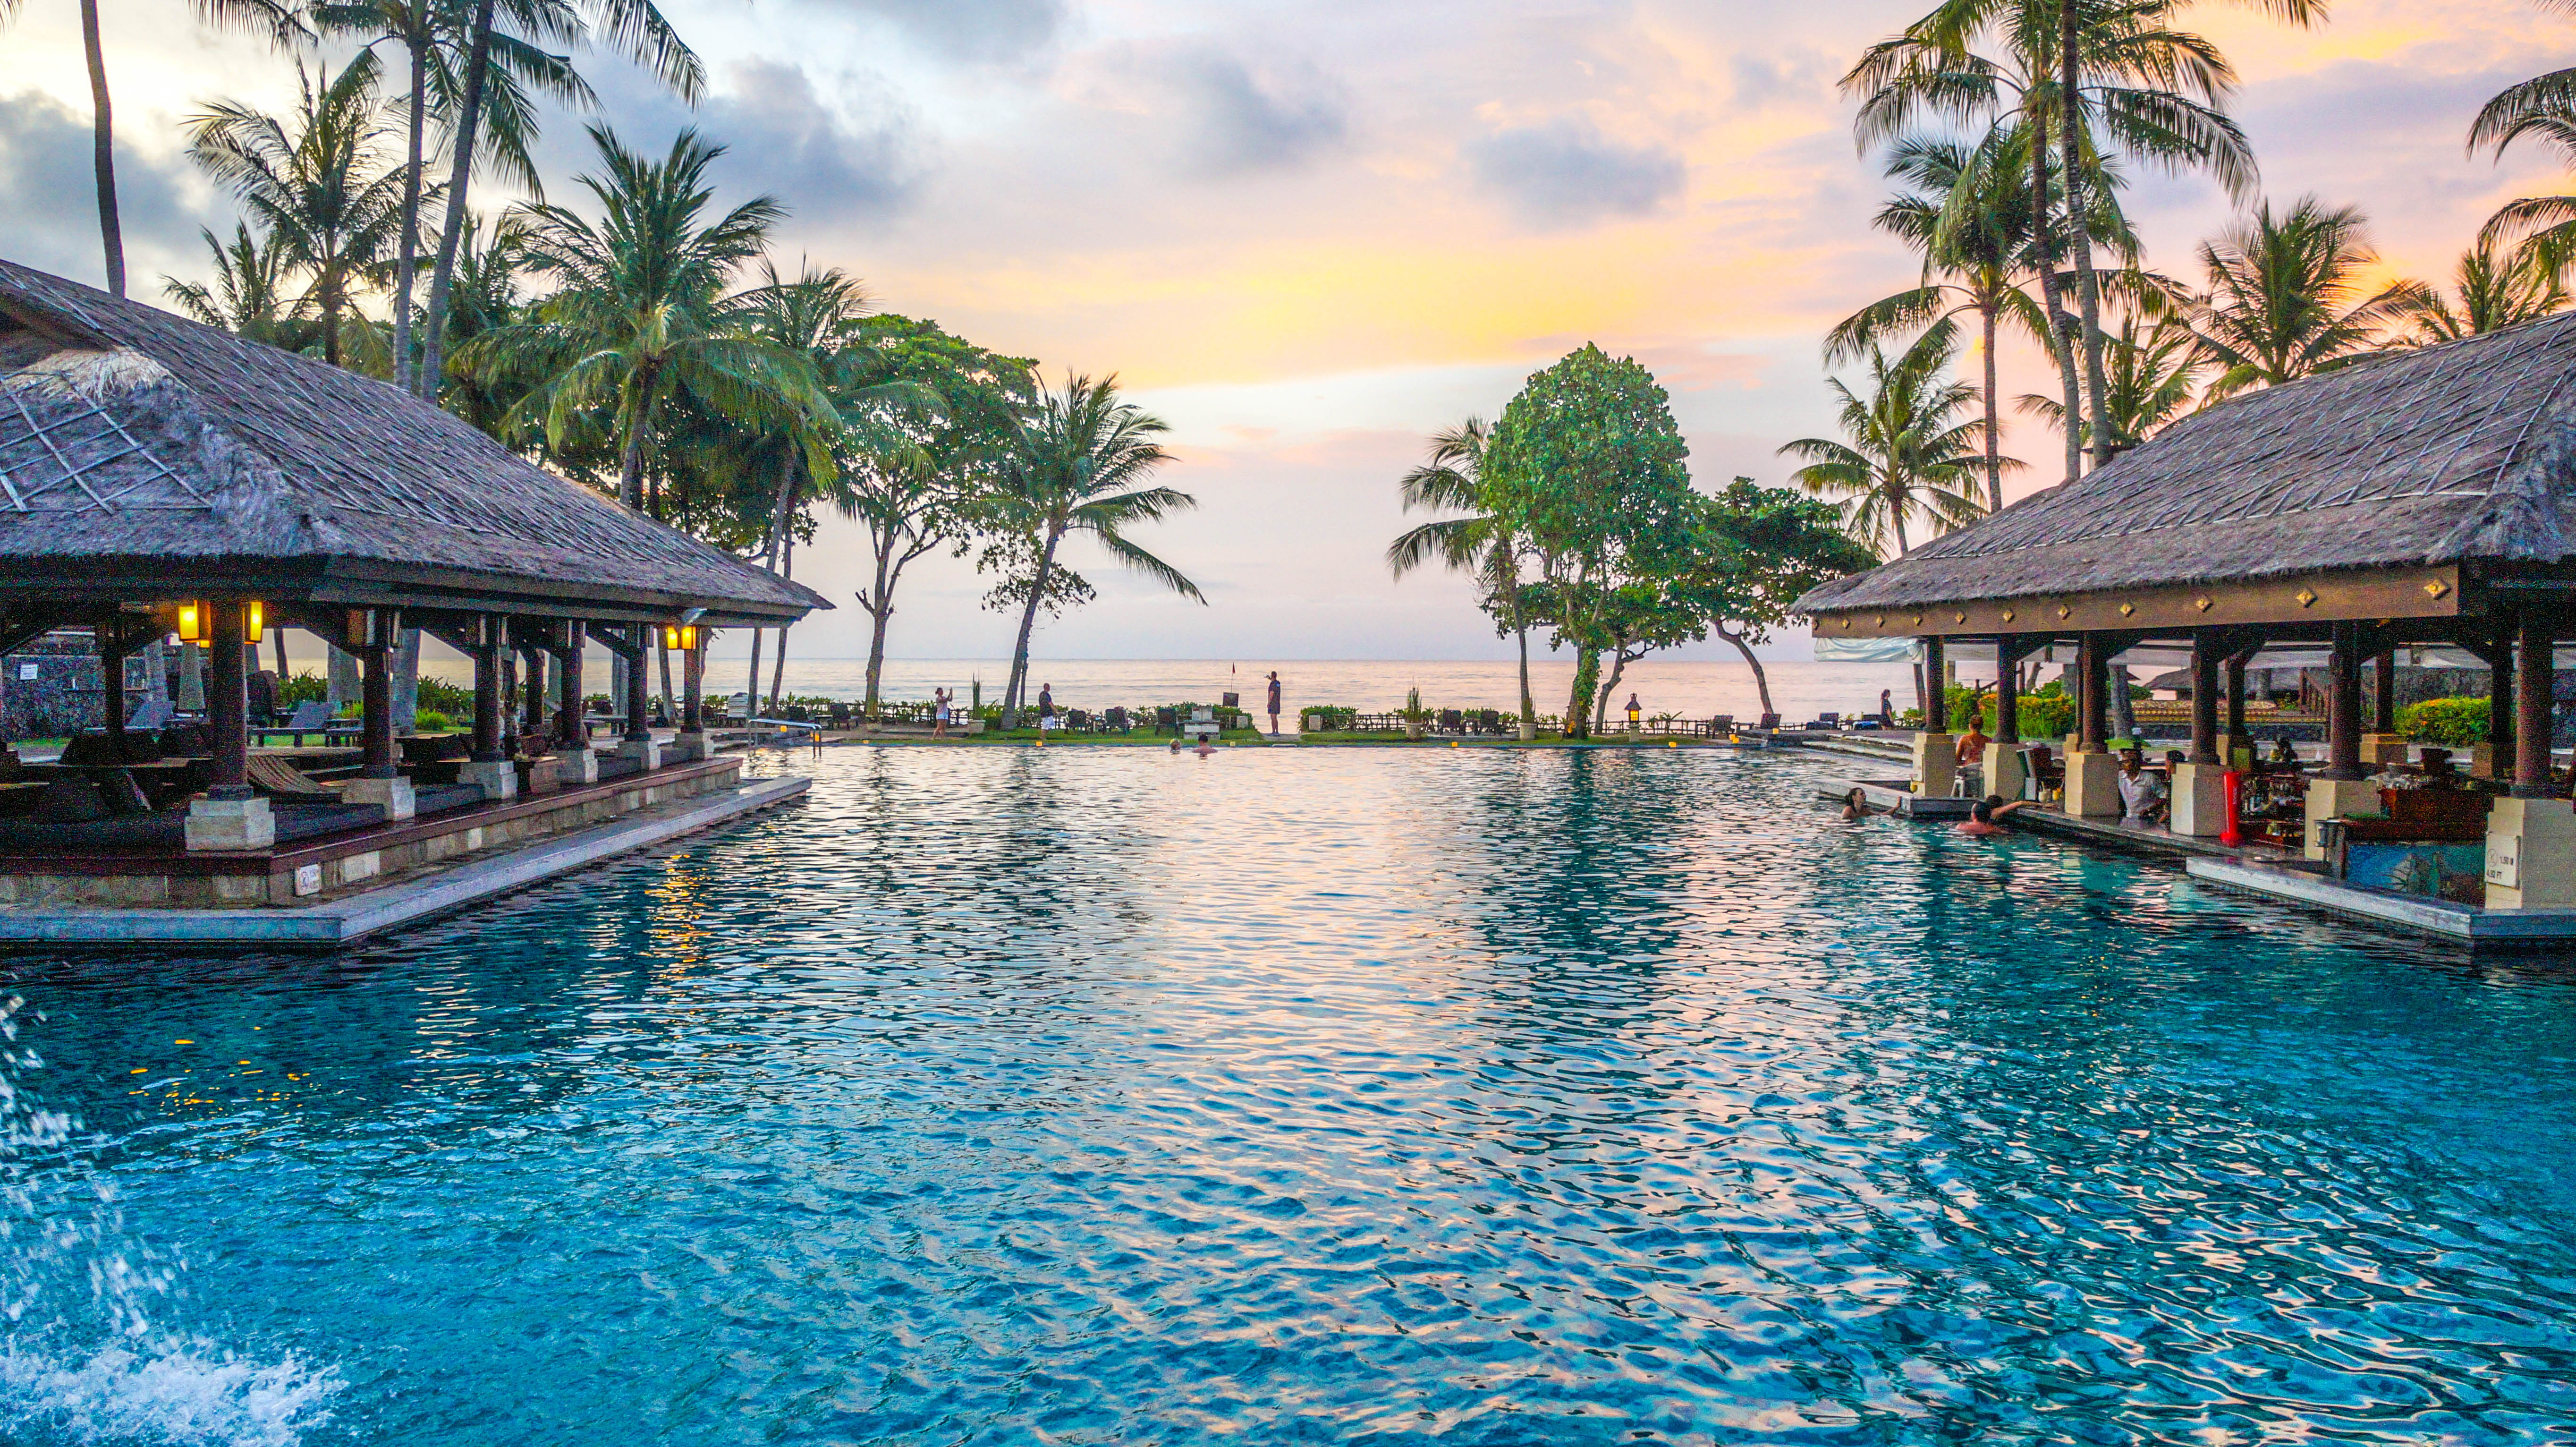 Where to stay in bali with a family luxury escapes for for Luxury places to stay in bali